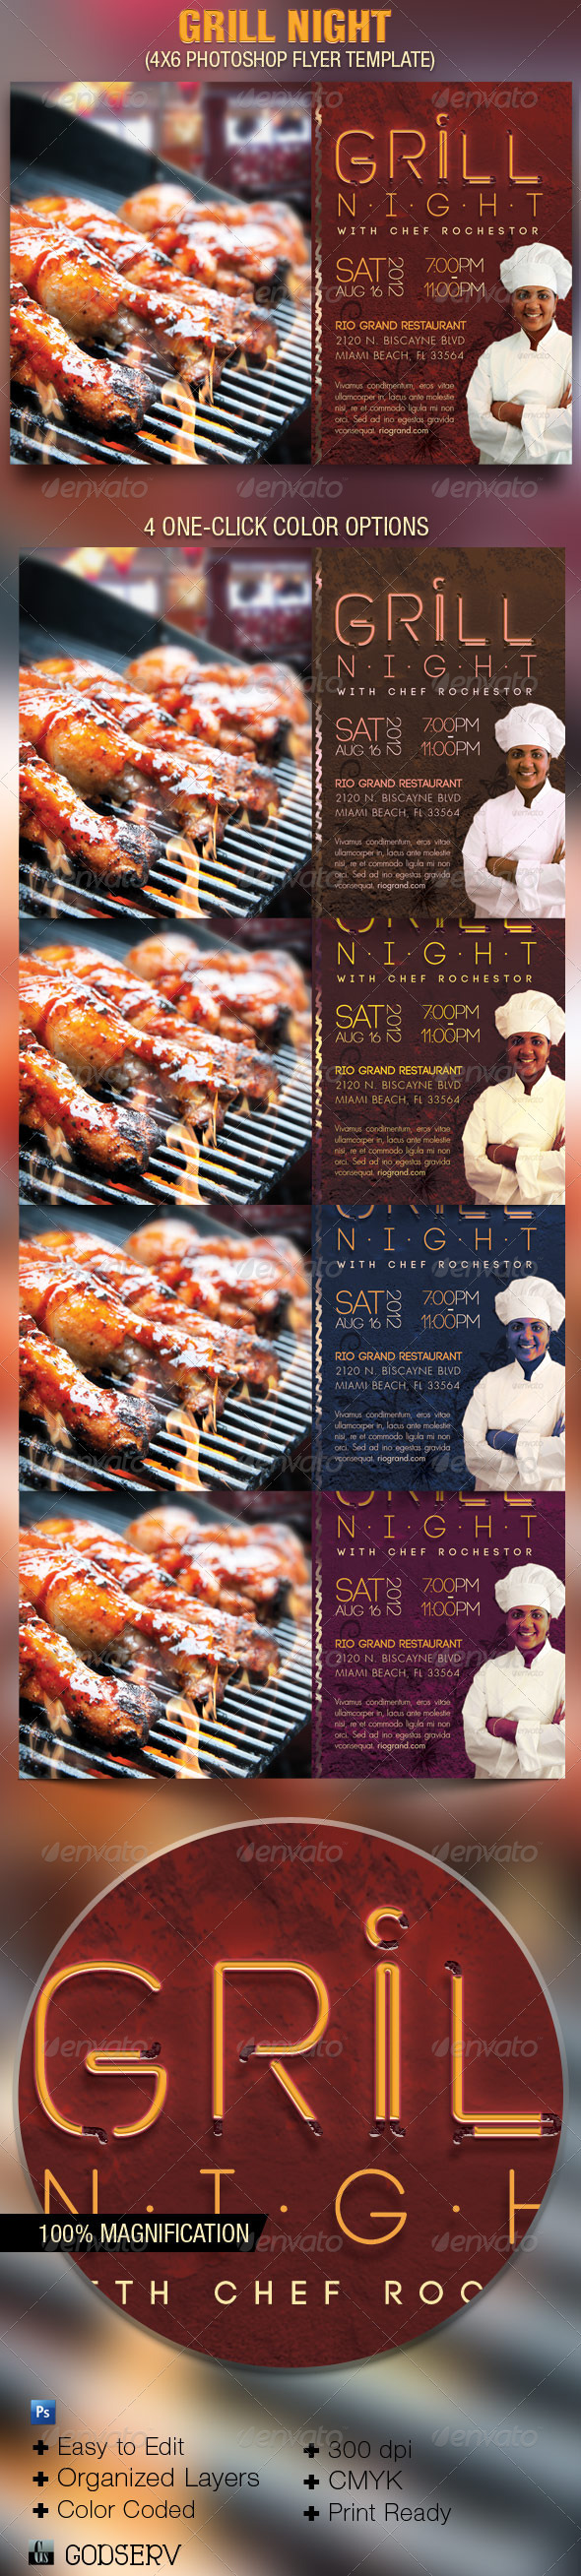 Grill Night Flyer Template - Events Flyers